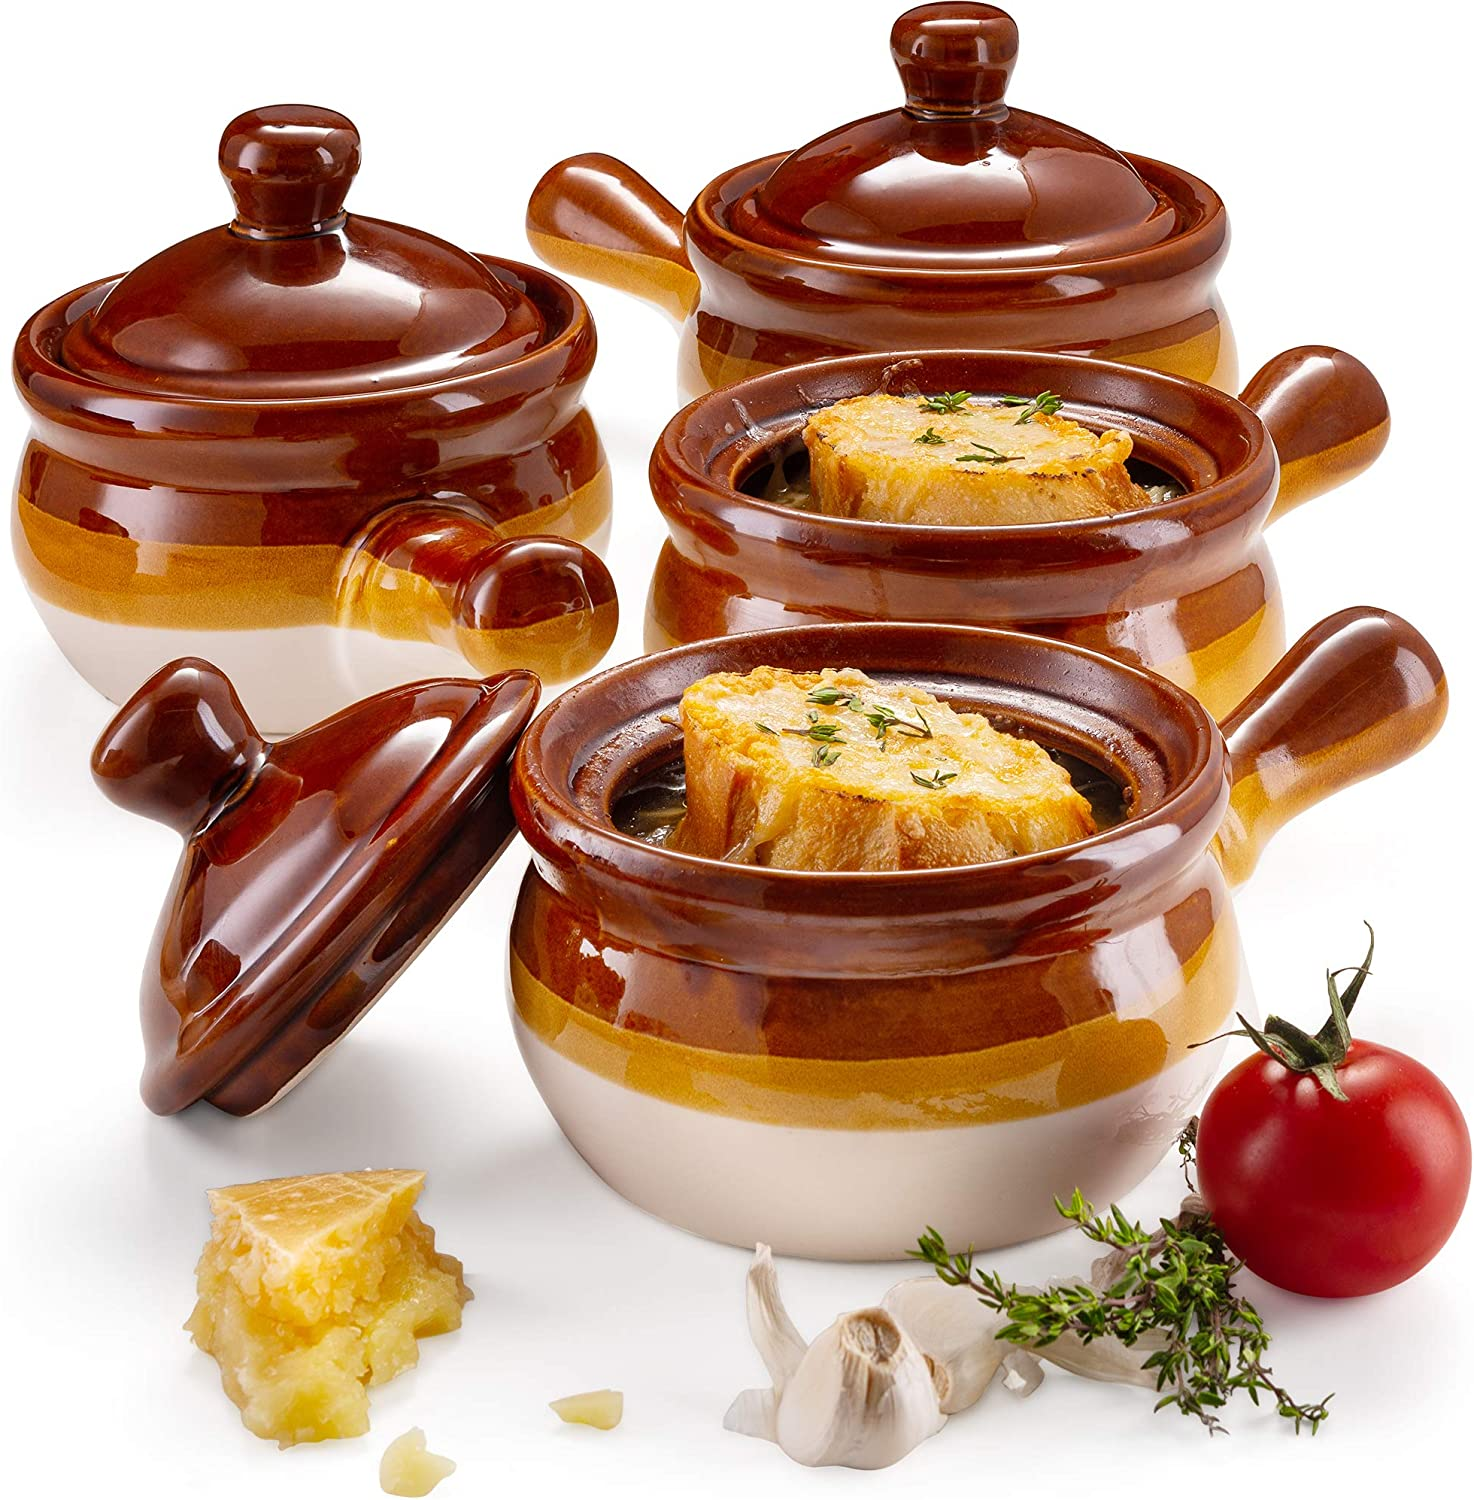 French Onion Soup Crock Bowls with Handles and Lid, 15 Ounce - Set of 4